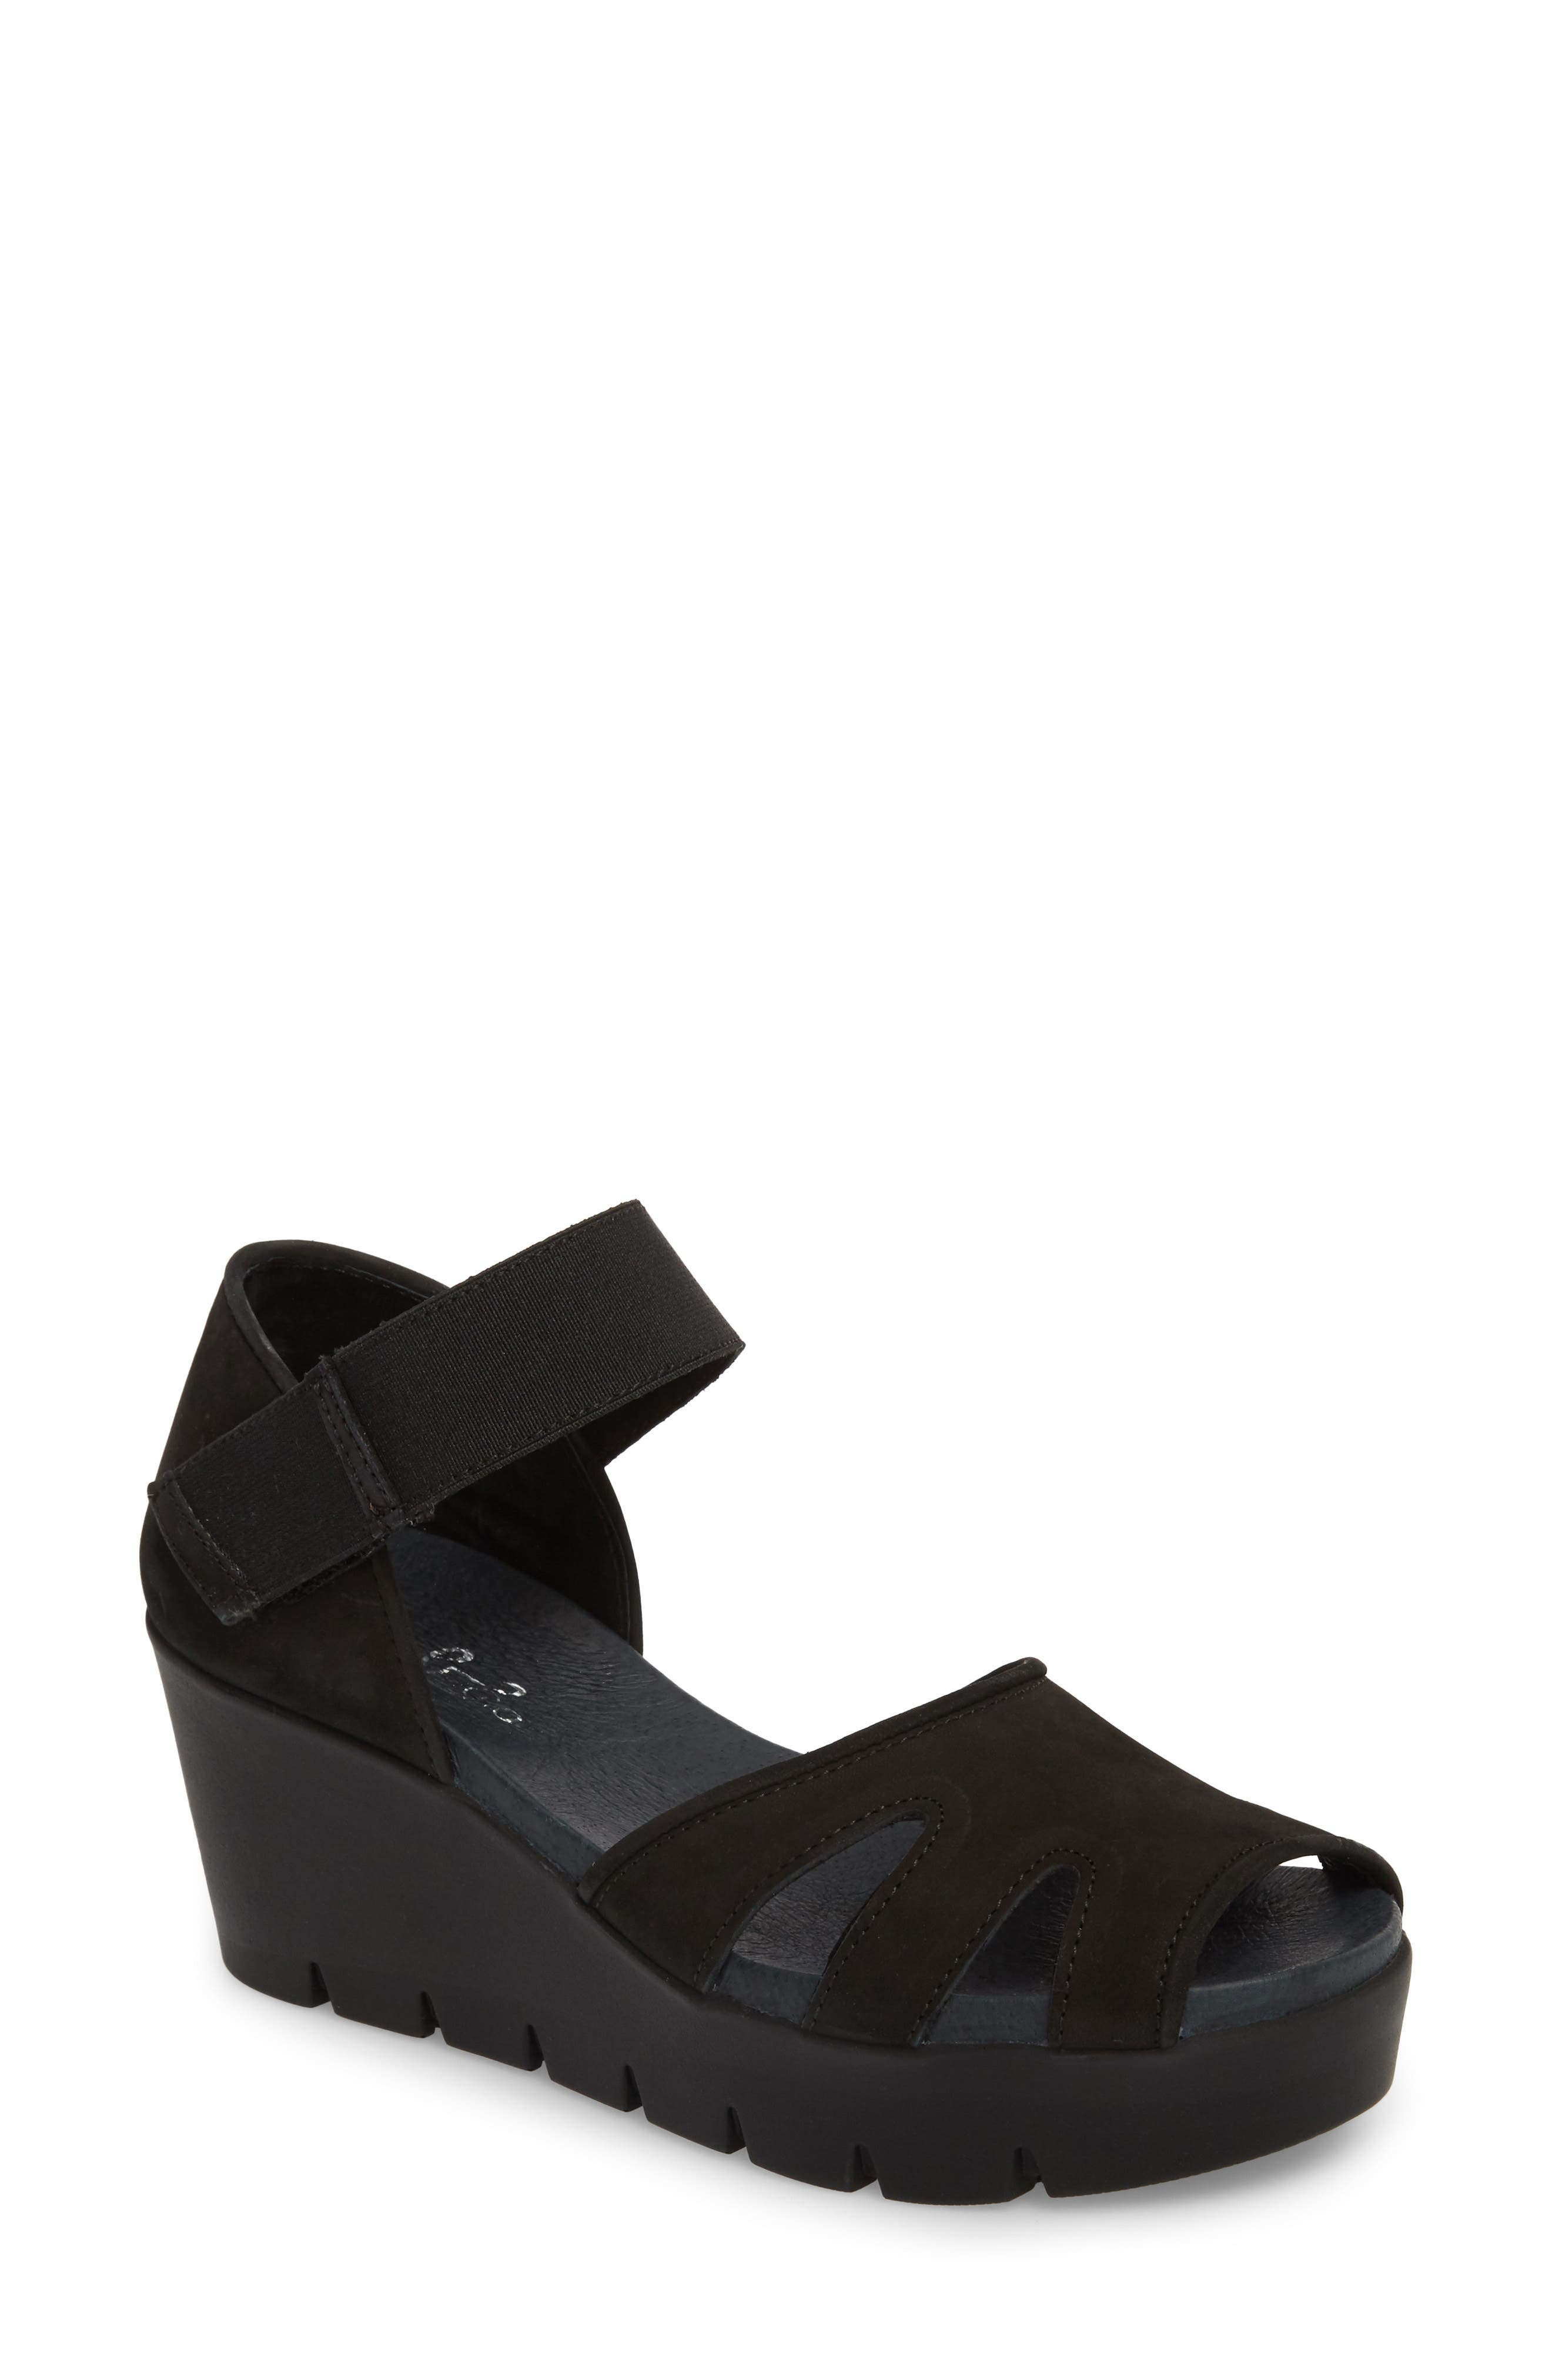 Sharon Platform Wedge Sandal,                             Main thumbnail 1, color,                             BLACK NUBUCK LEATHER